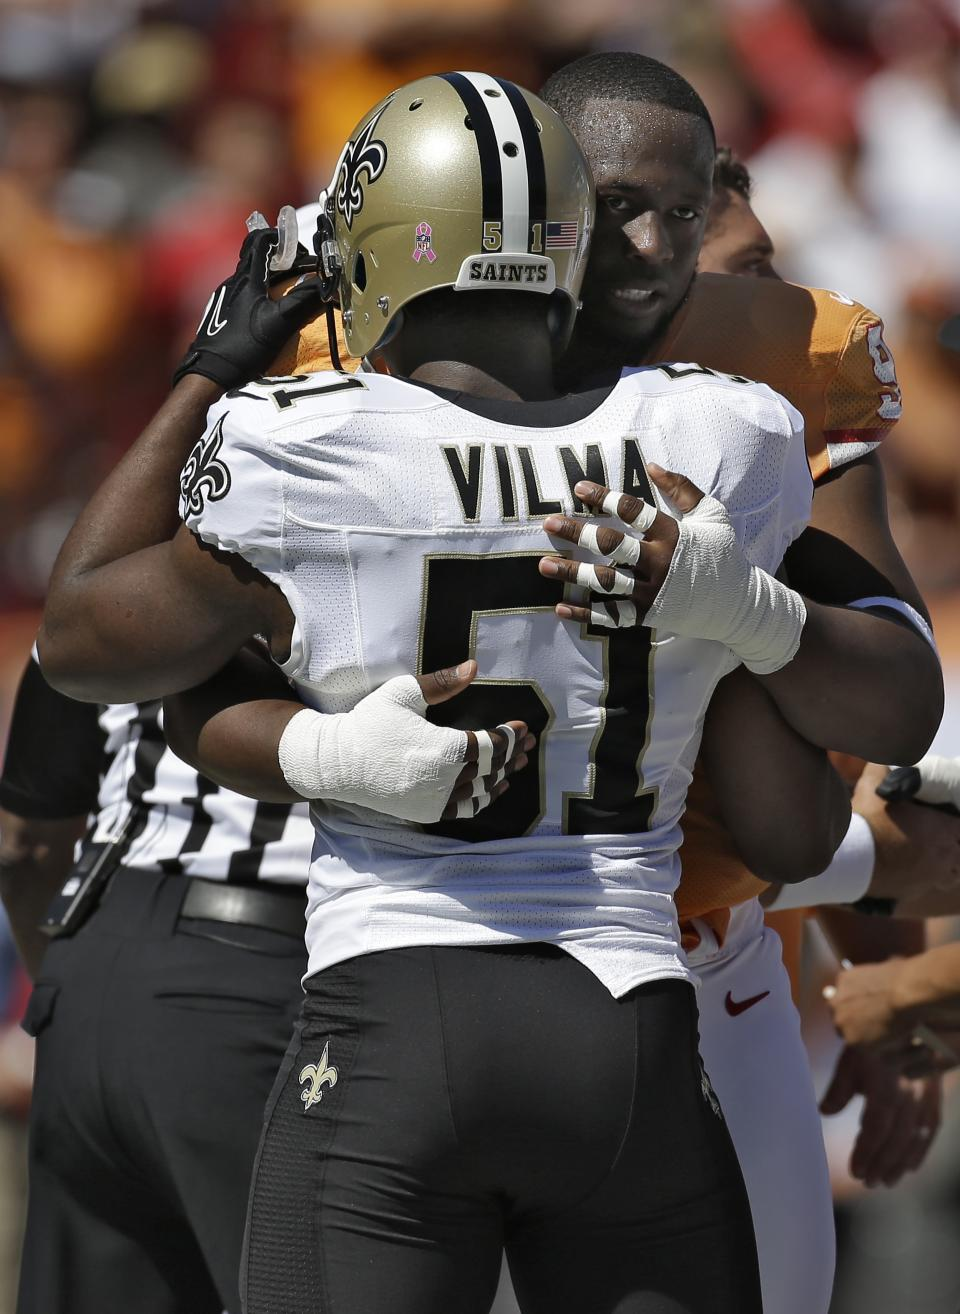 New Orleans Saints linebacker Jonathan Vilma (51) gets a hug from Tampa Bay Buccaneers defensive tackle Gerald McCoy (93) after the coin flip before an NFL football game Sunday, Oct. 21, 2012, in Tampa, Fla. (AP Photo/Chris O'Meara)